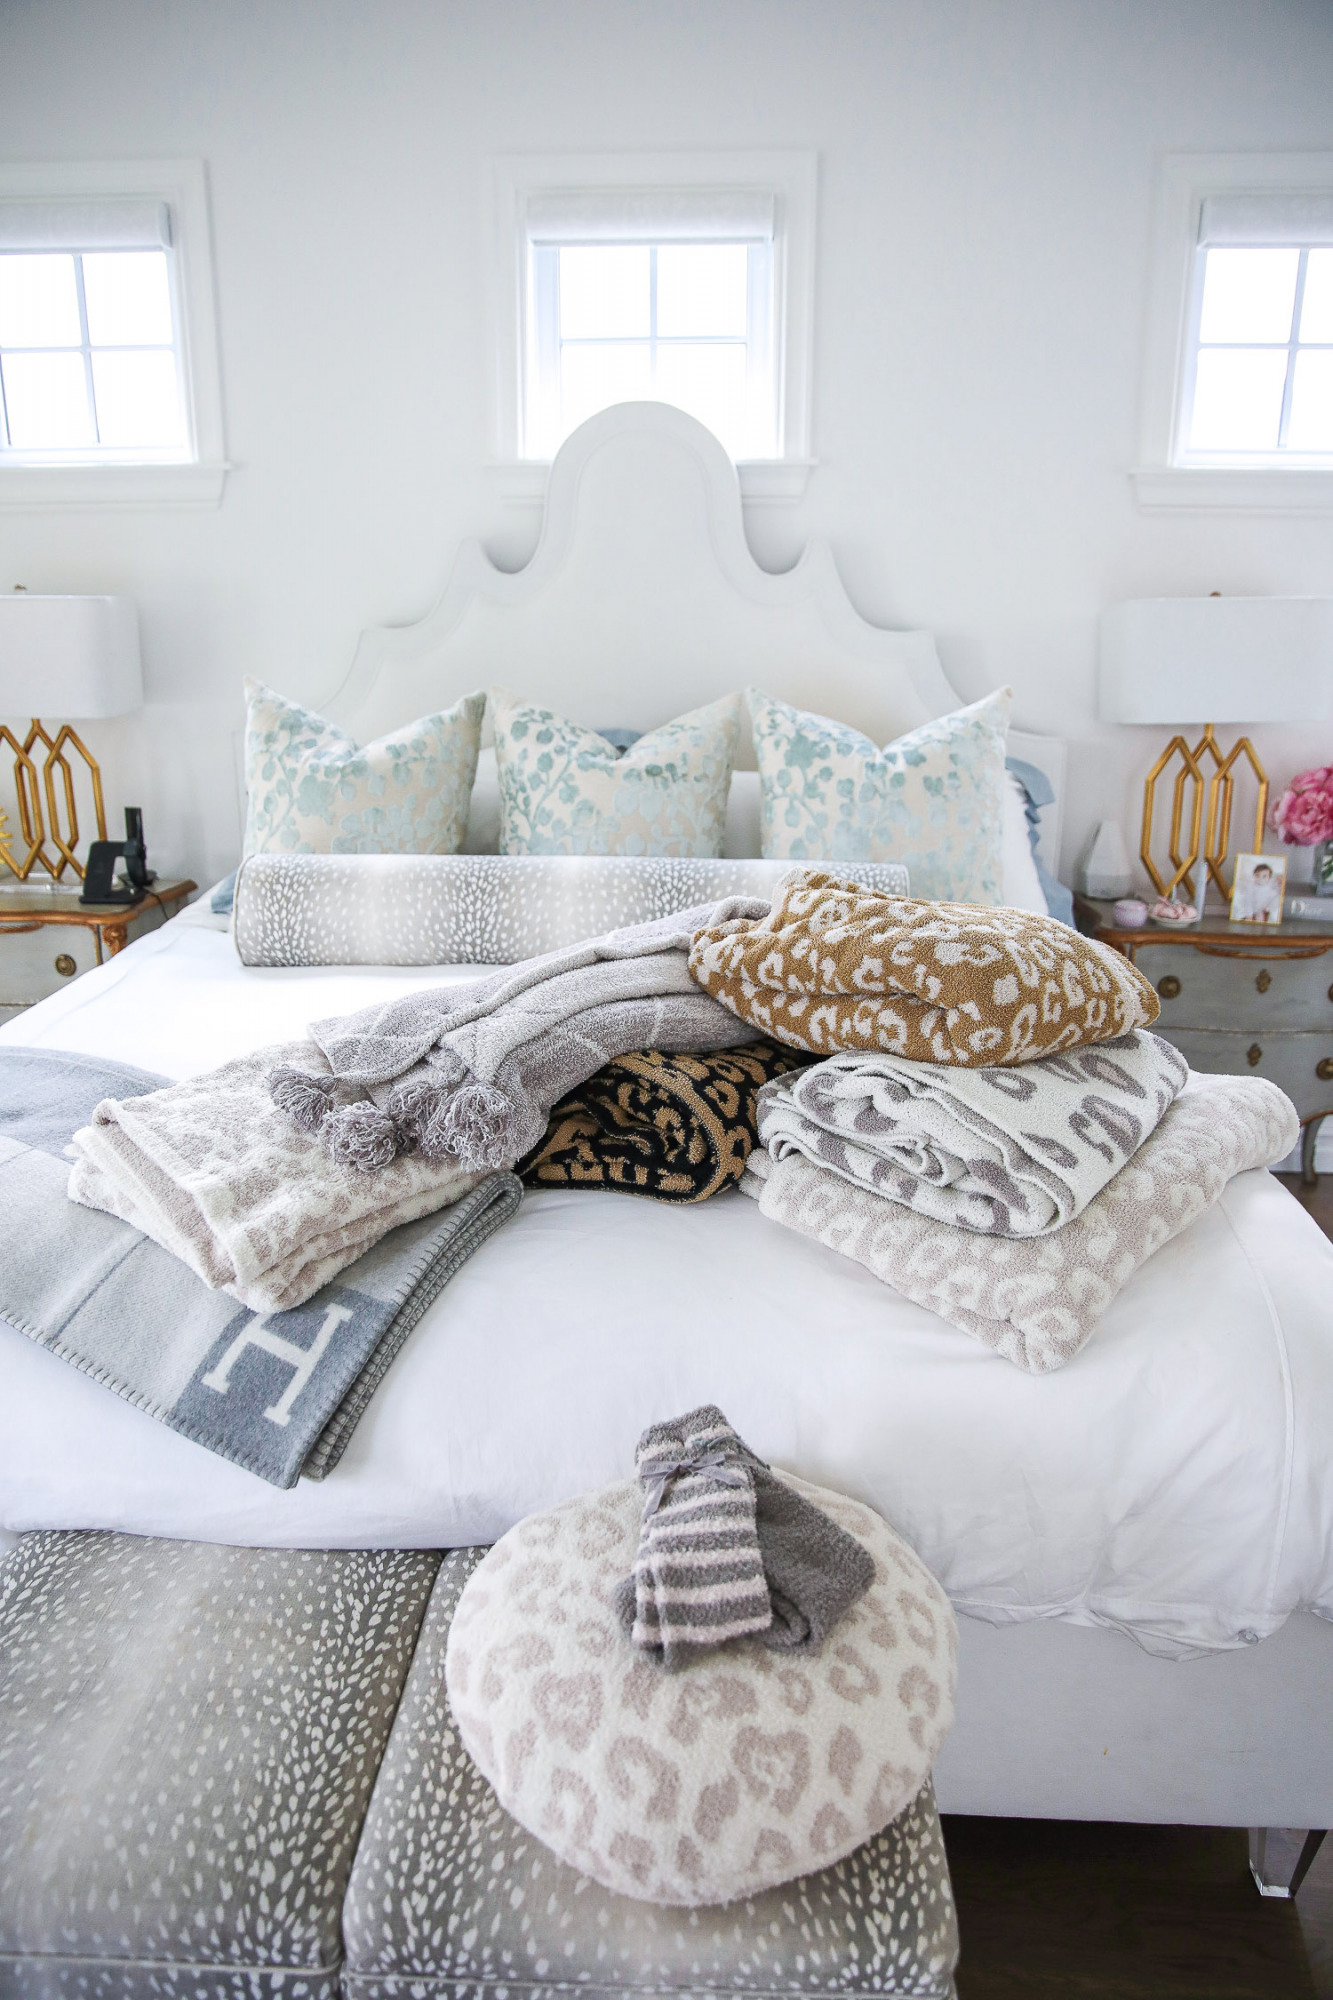 Emily gemma master bedroom, little design co pillows bolster, Nordstrom anniversary sale home must haves 2021, nsale barefoot dreams blanket pillows review, parfum de marly set | Nordstrom Anniversary Sale 2021 by popular US life and style blog, The Sweetest Thing: image of a master bedroom with Barefoot Dreams blankets and Barefoot Dreams socks on a bed with a white fabric headboard and white bedding next to  mirrored night stands with gold lamps.